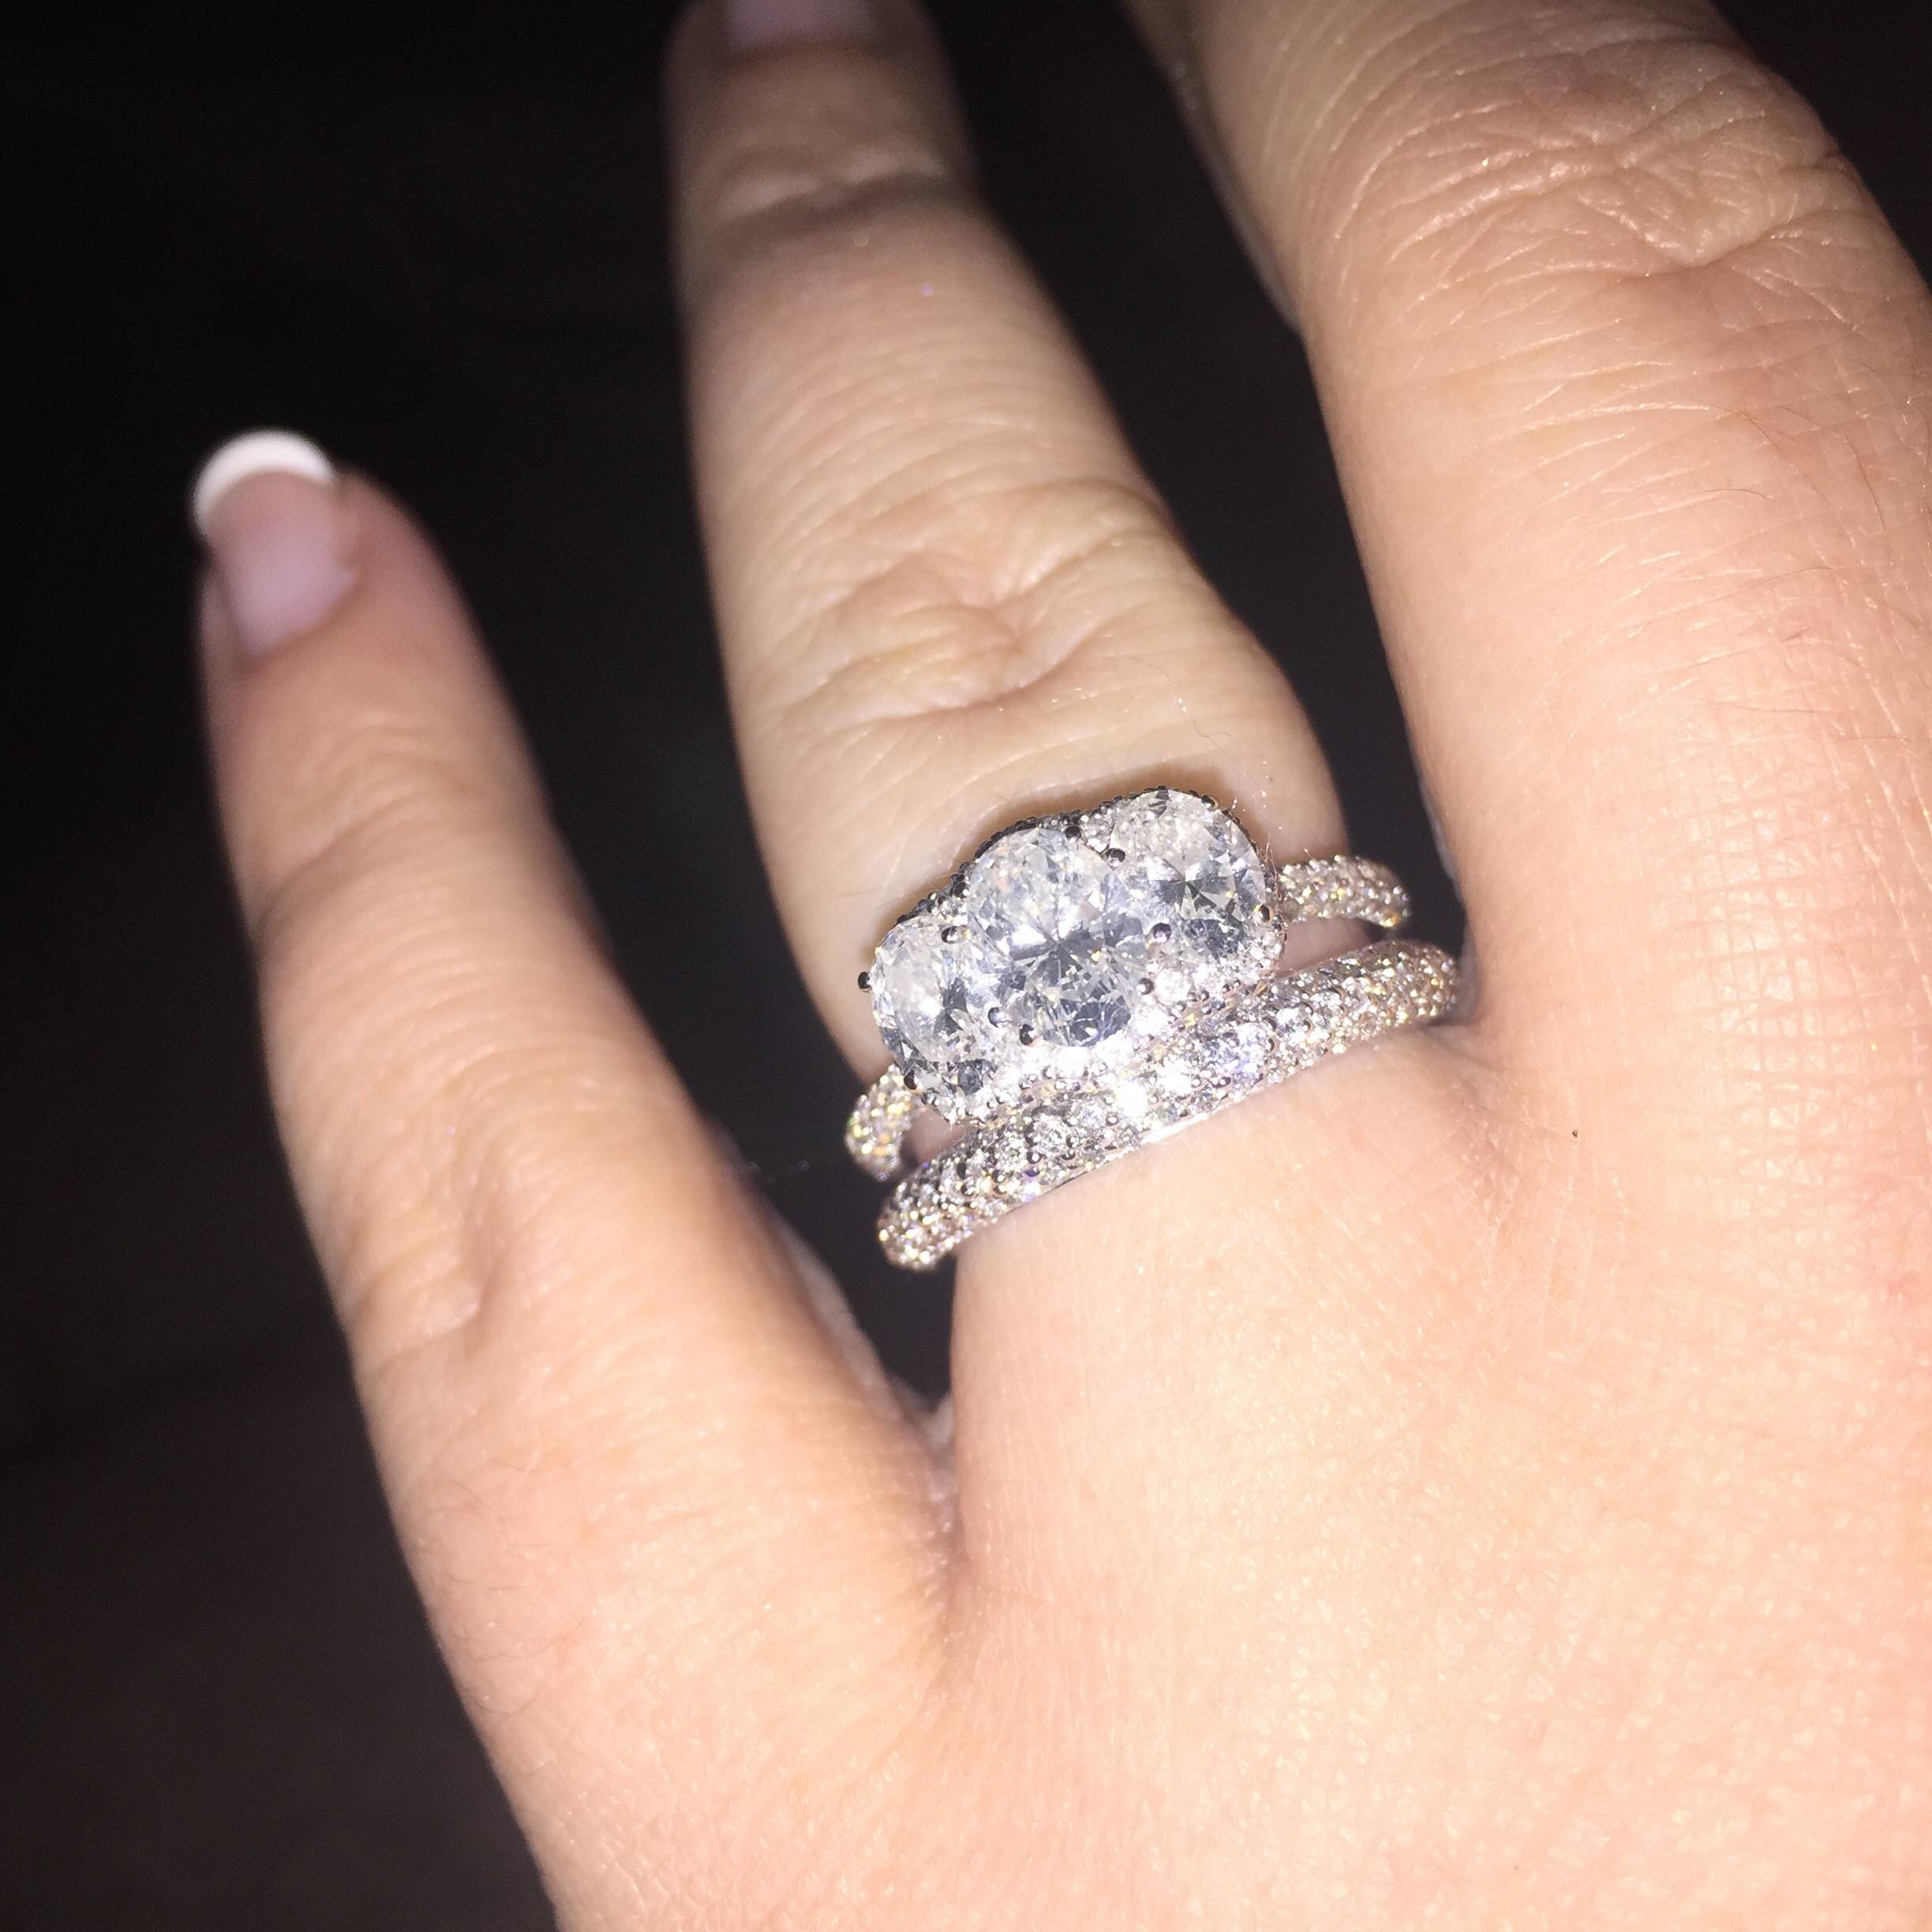 Can I See Your Wedding Band With 3 Stone Engagement Rings Throughout Three Stone Engagement Rings With Wedding Band (View 7 of 15)